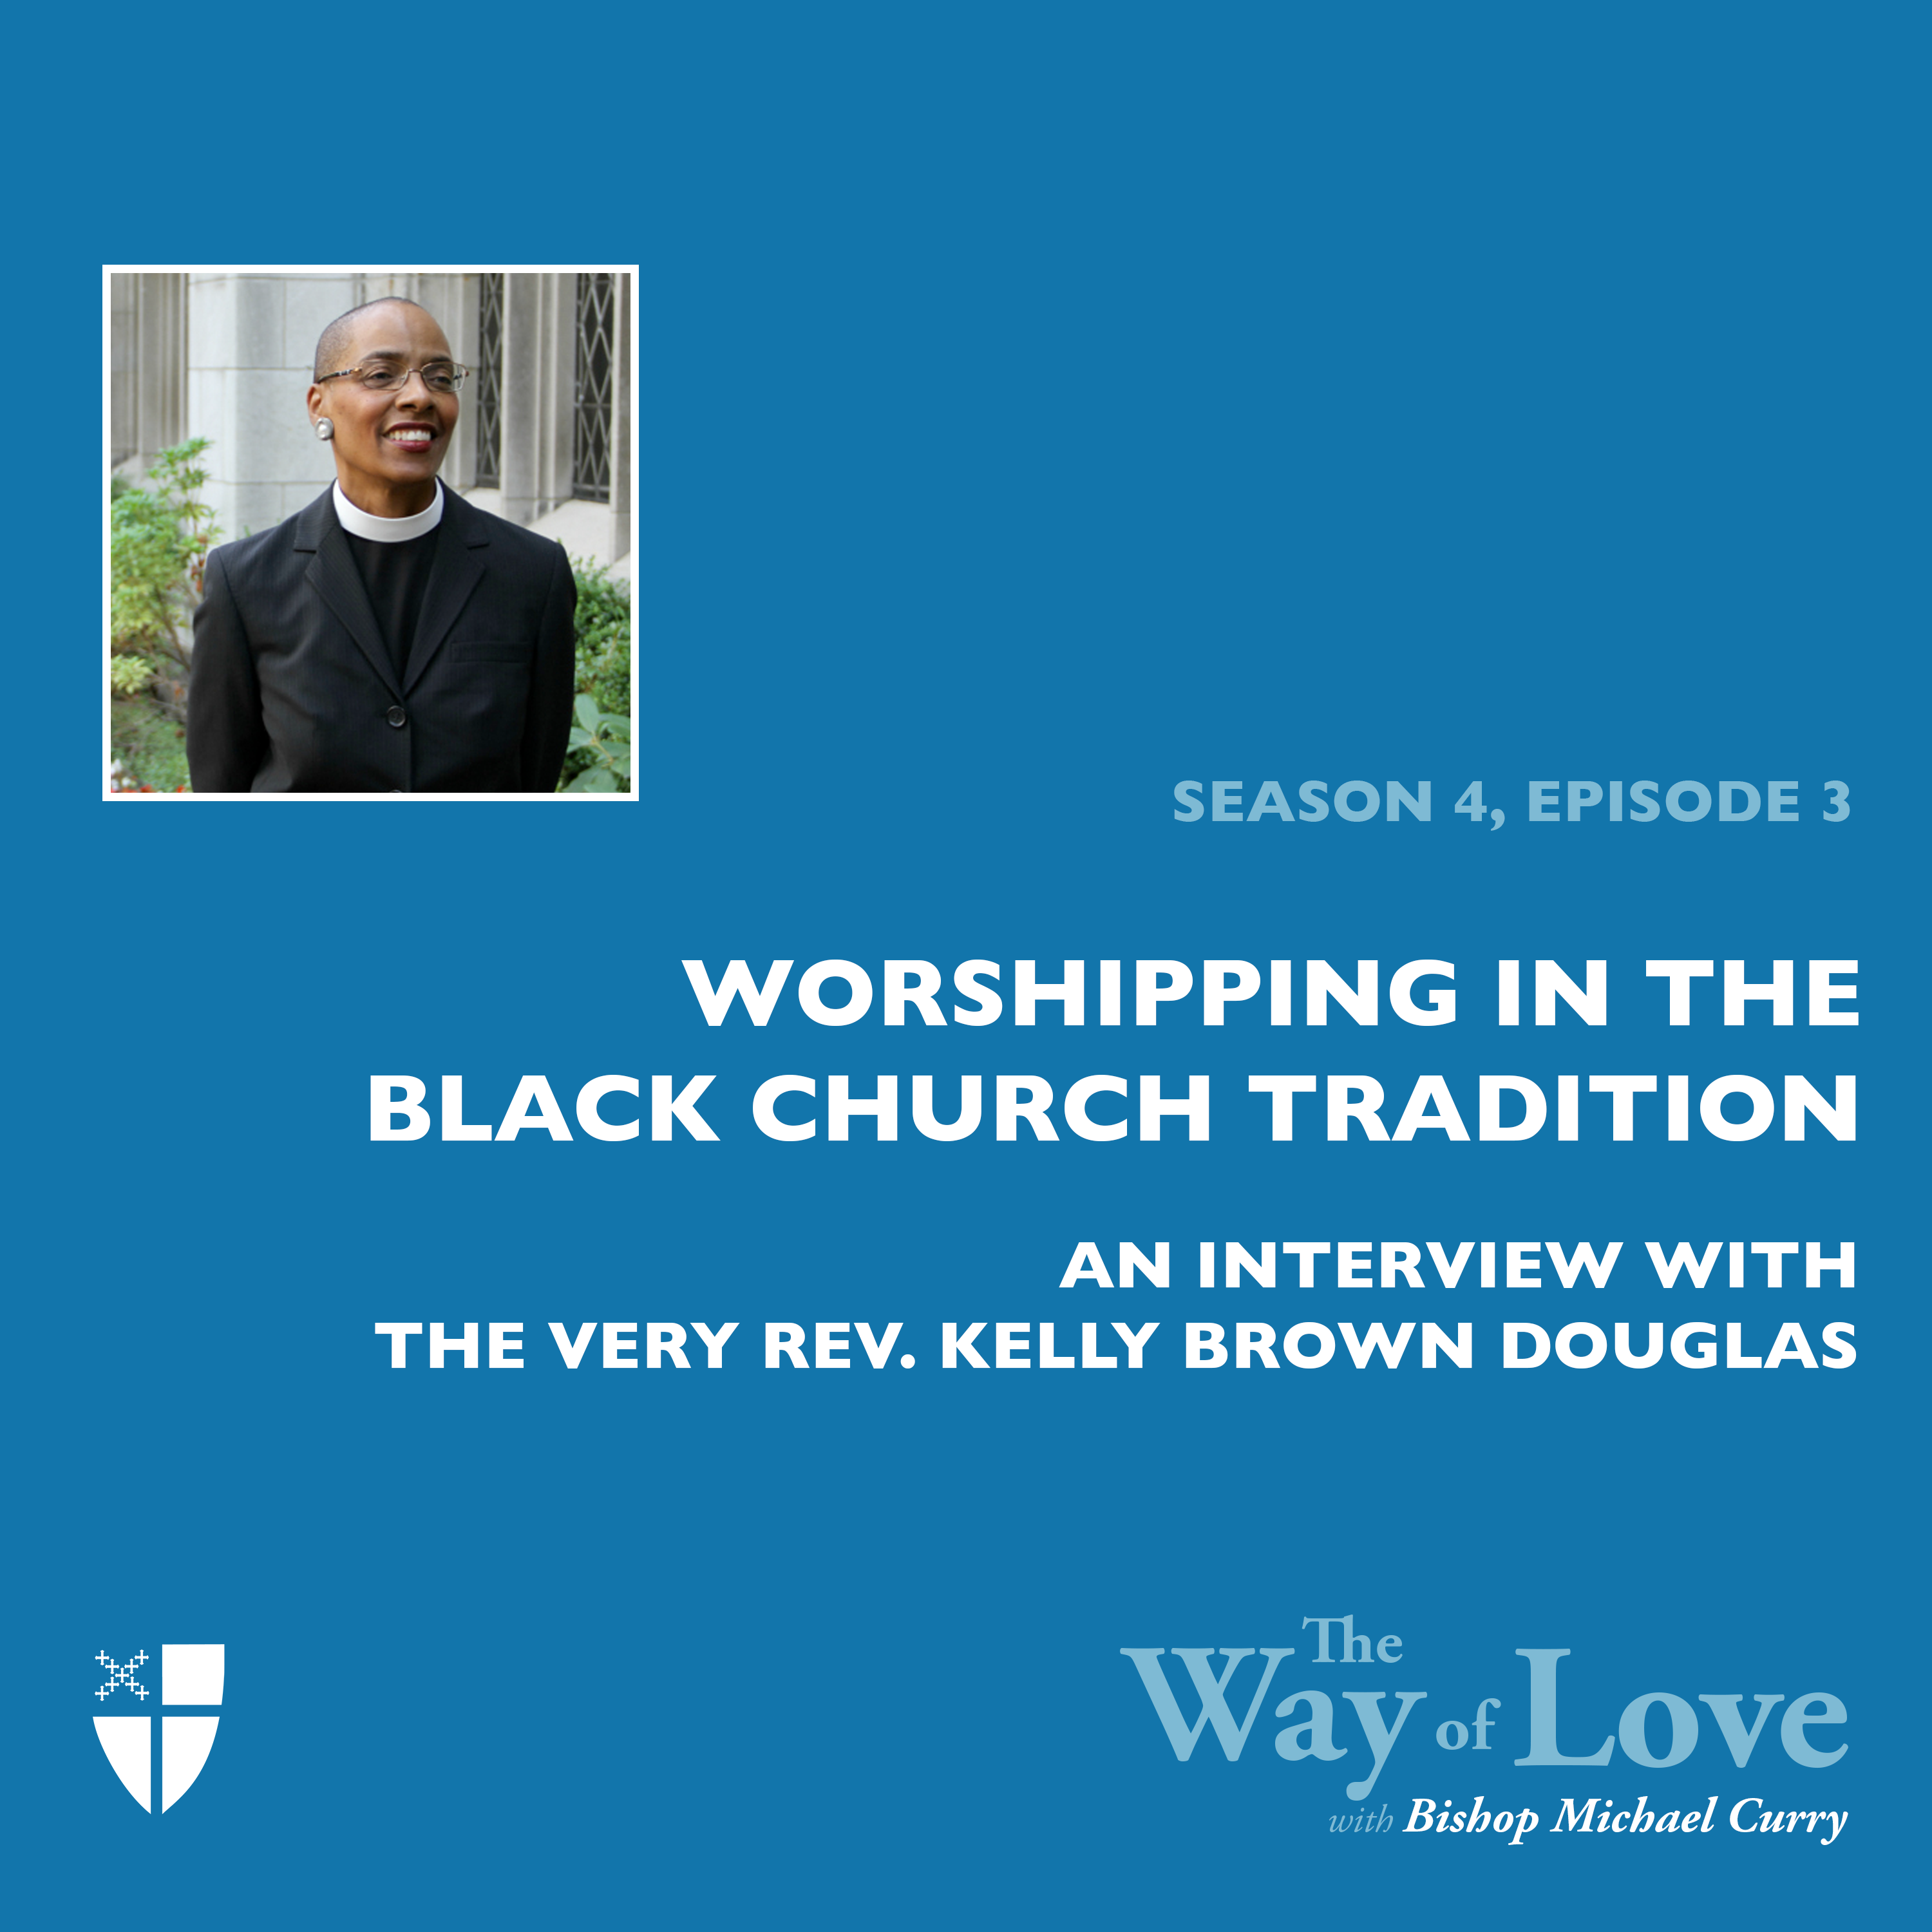 Worshipping in the Black Church Tradition with Dean Kelly Brown Douglas